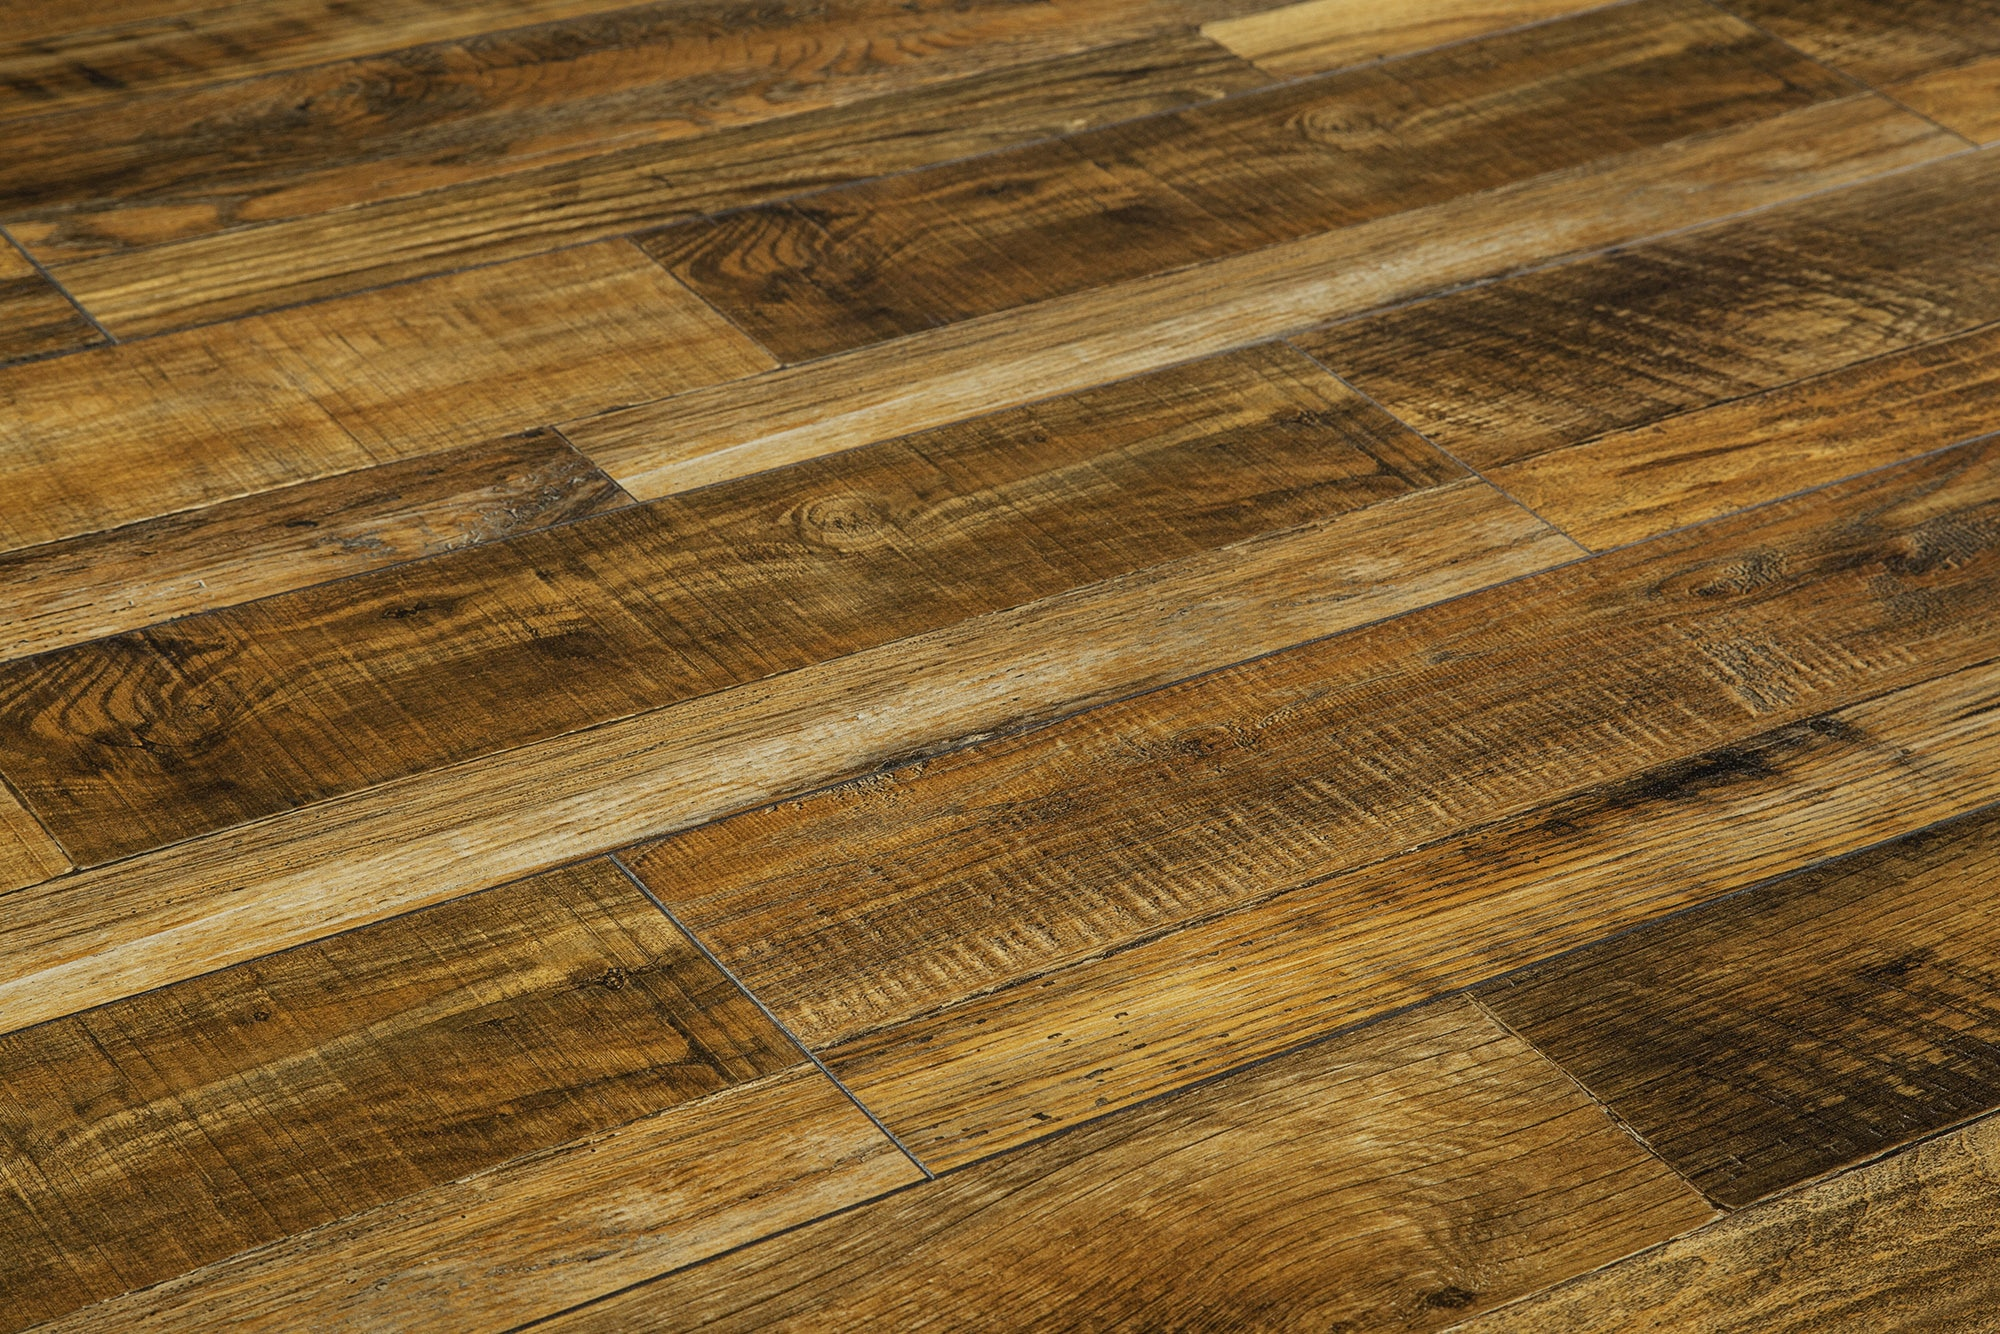 Rustic Laminate Flooring style selections 614 in w x 452 ft l barrel hickory handscraped wood plank Free Samples Lamton Laminate 12mm Palapa Collection Rustic Comodo